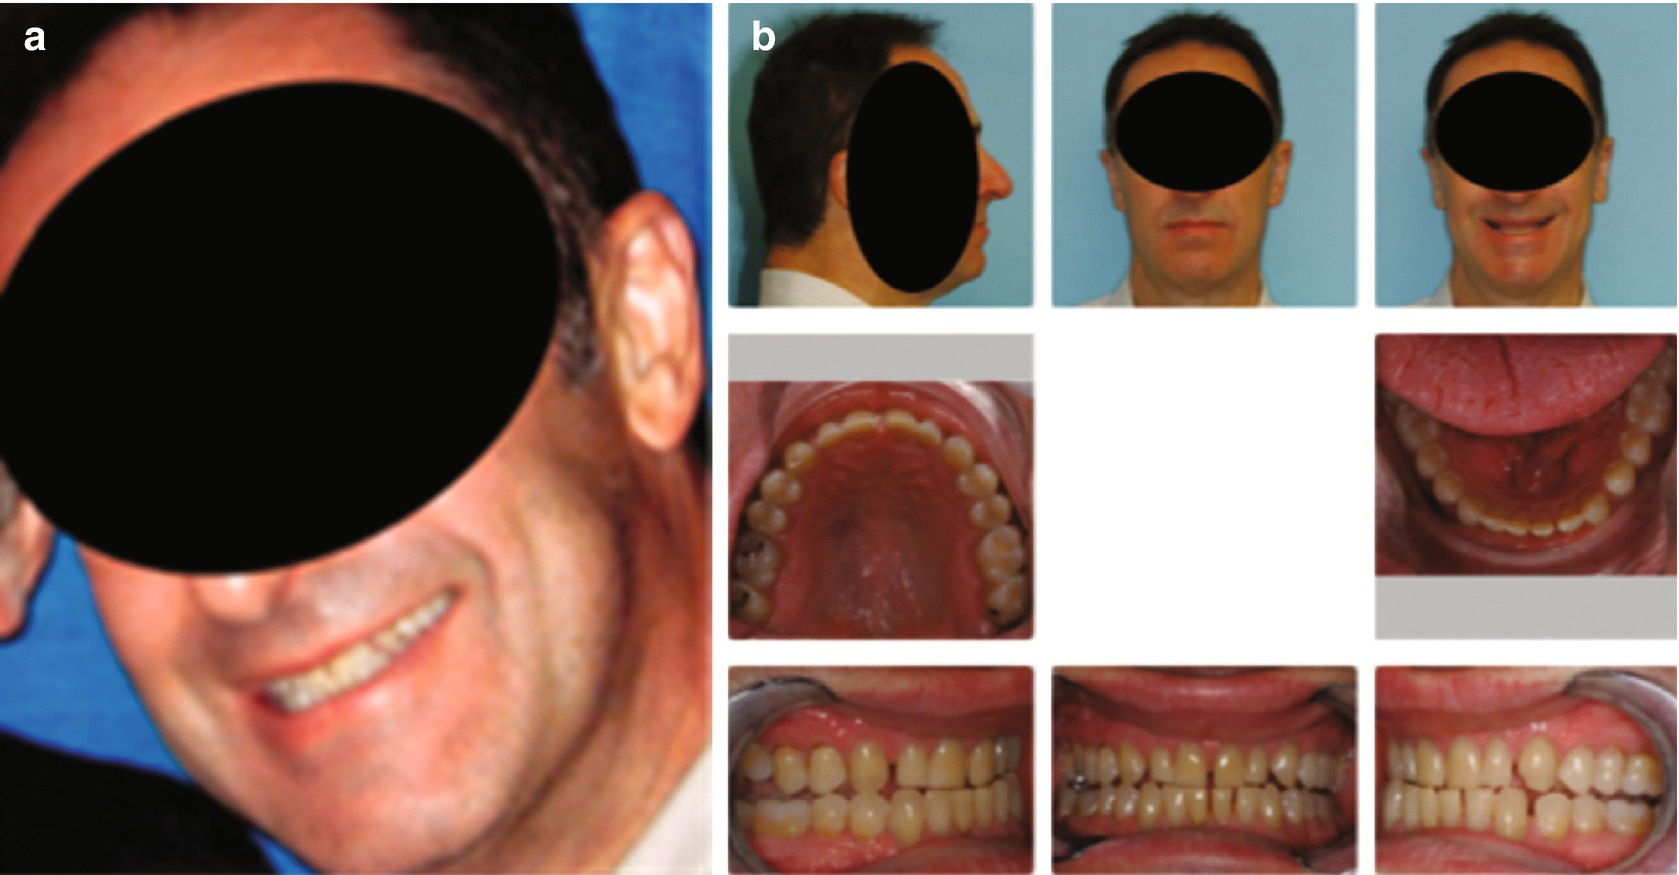 Airway Kening Orthodontic Orthopedic Development A Correlation Of Facial Balance Tmd And Airway For All Ages Springerlink